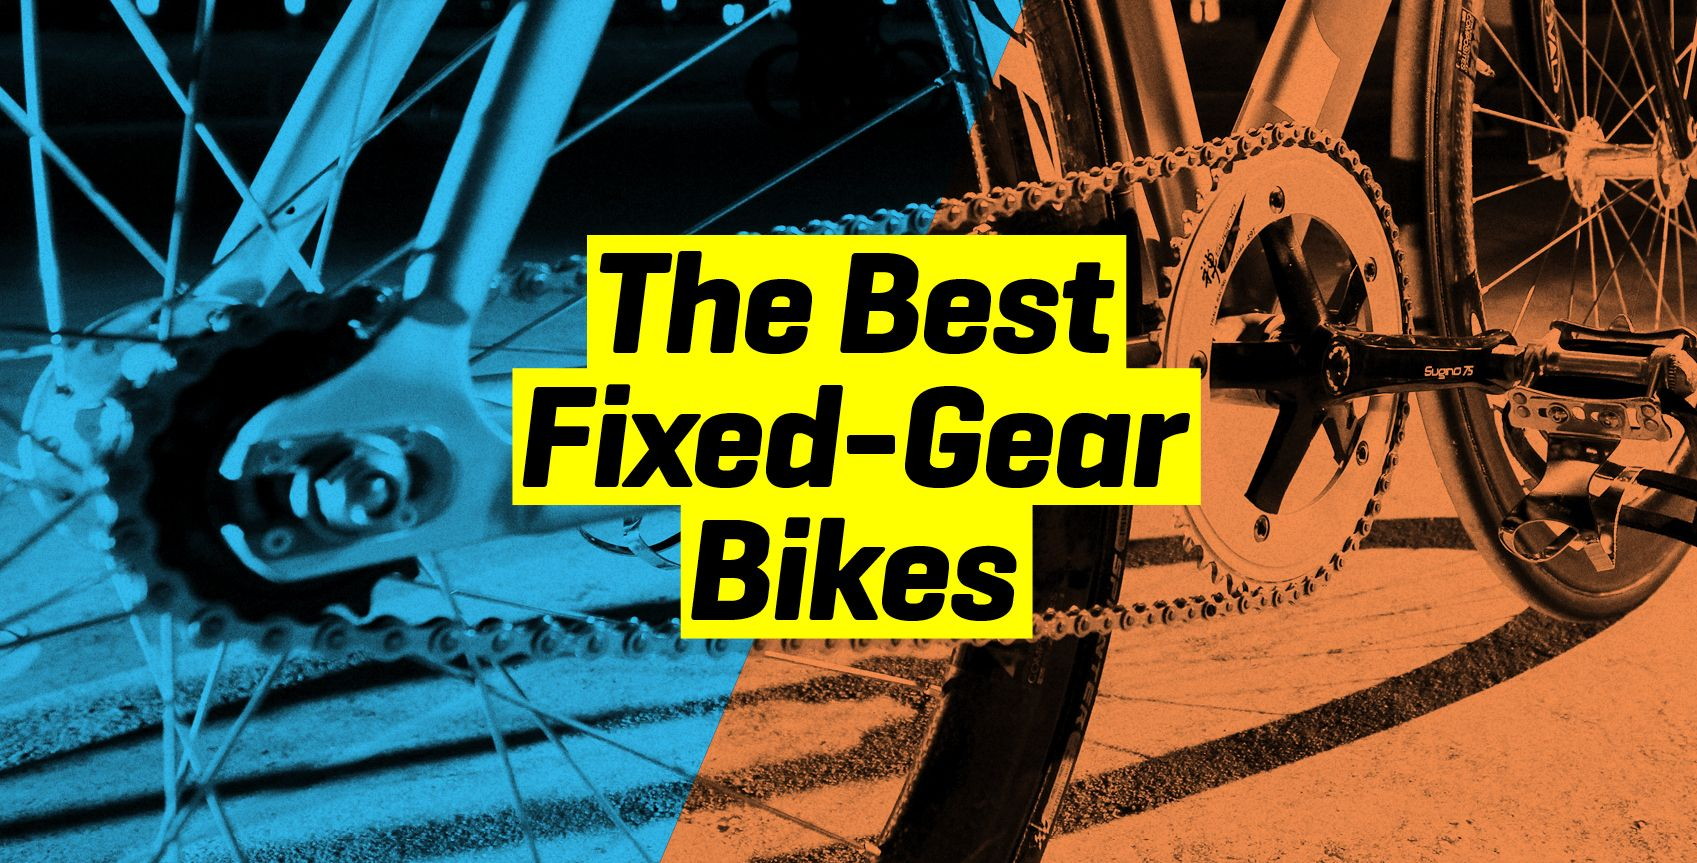 Best Fixie Bikes - Fixed Gear Bikes 2019